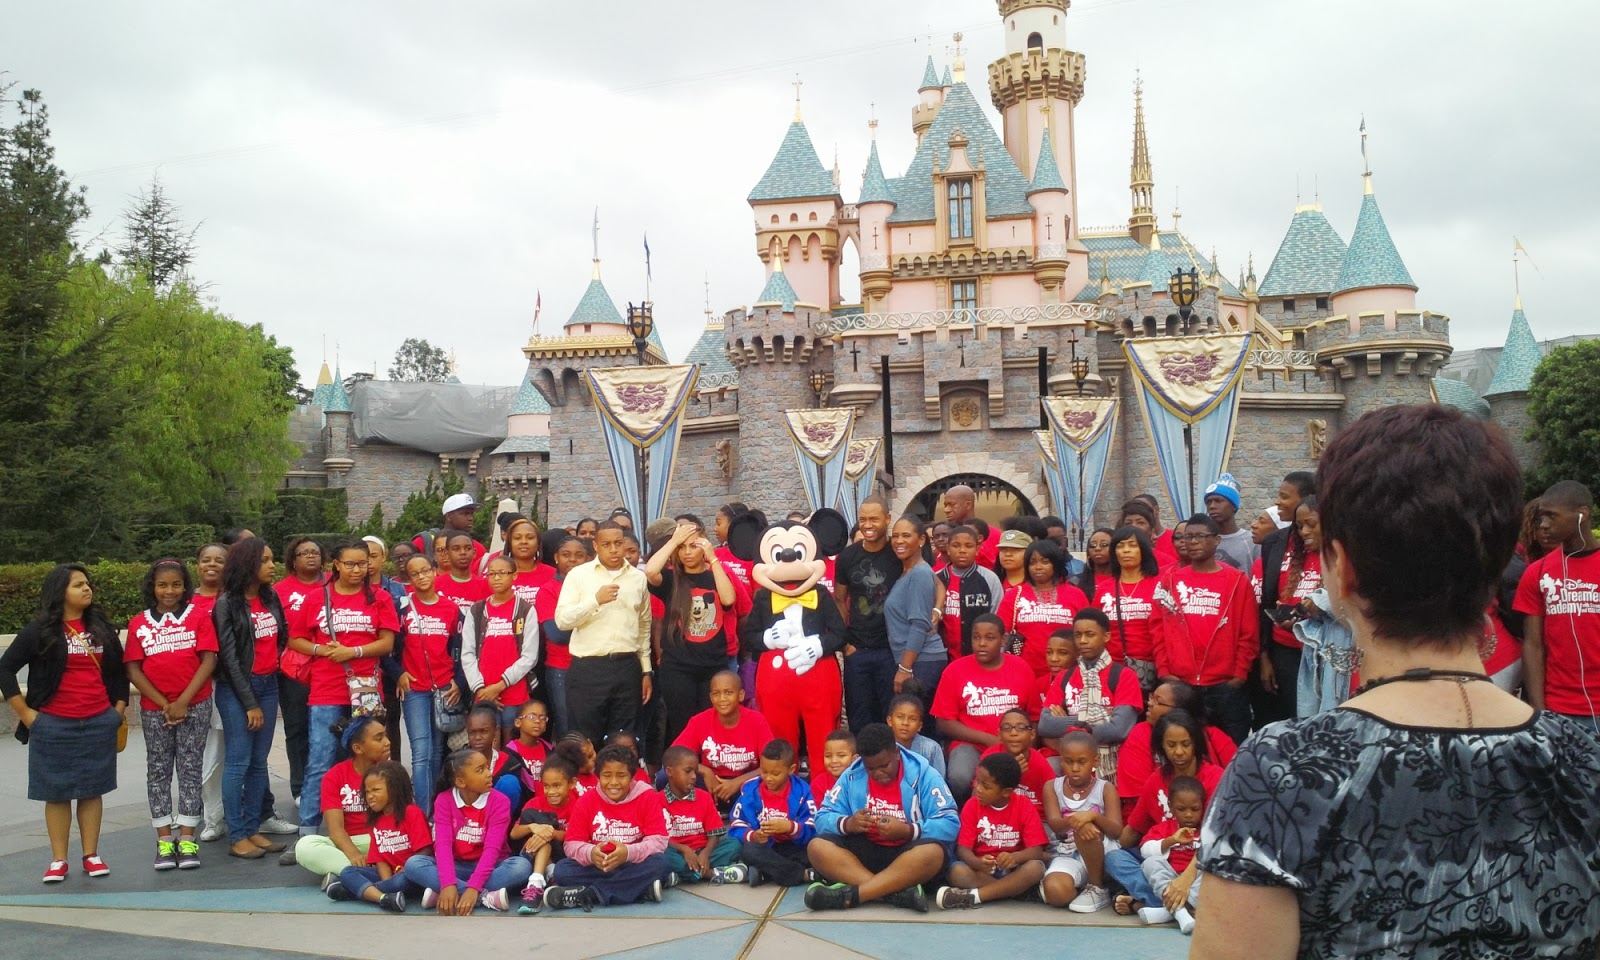 disney dreamers academy 2014 now is the time to apply for the 2014 academy you must submit your application and essay online disneydreamersacademy com by 31 2013